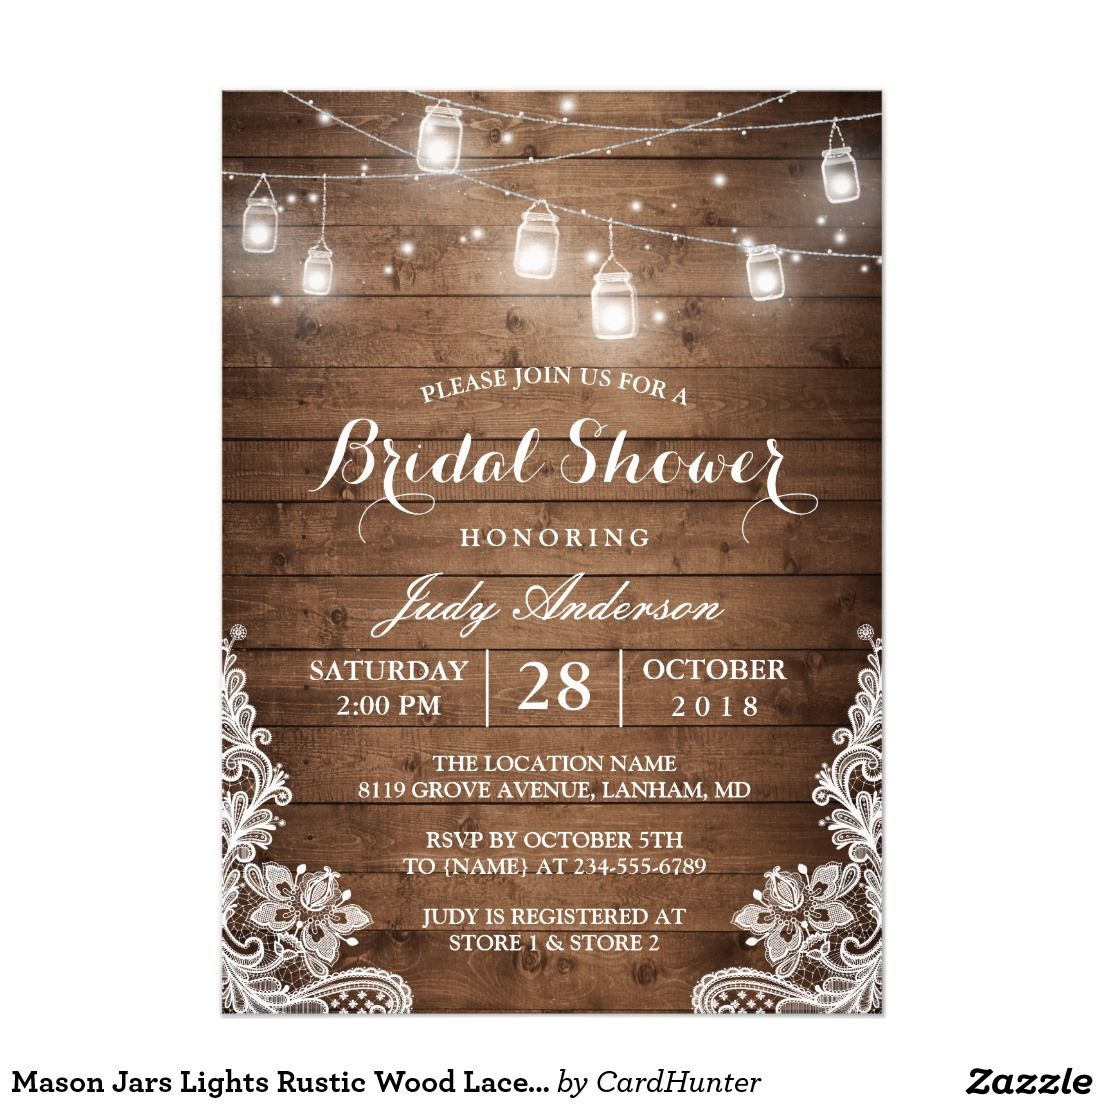 Mason Jars Lights Rustic Wood Lace Bridal Shower Invitation Zazzle